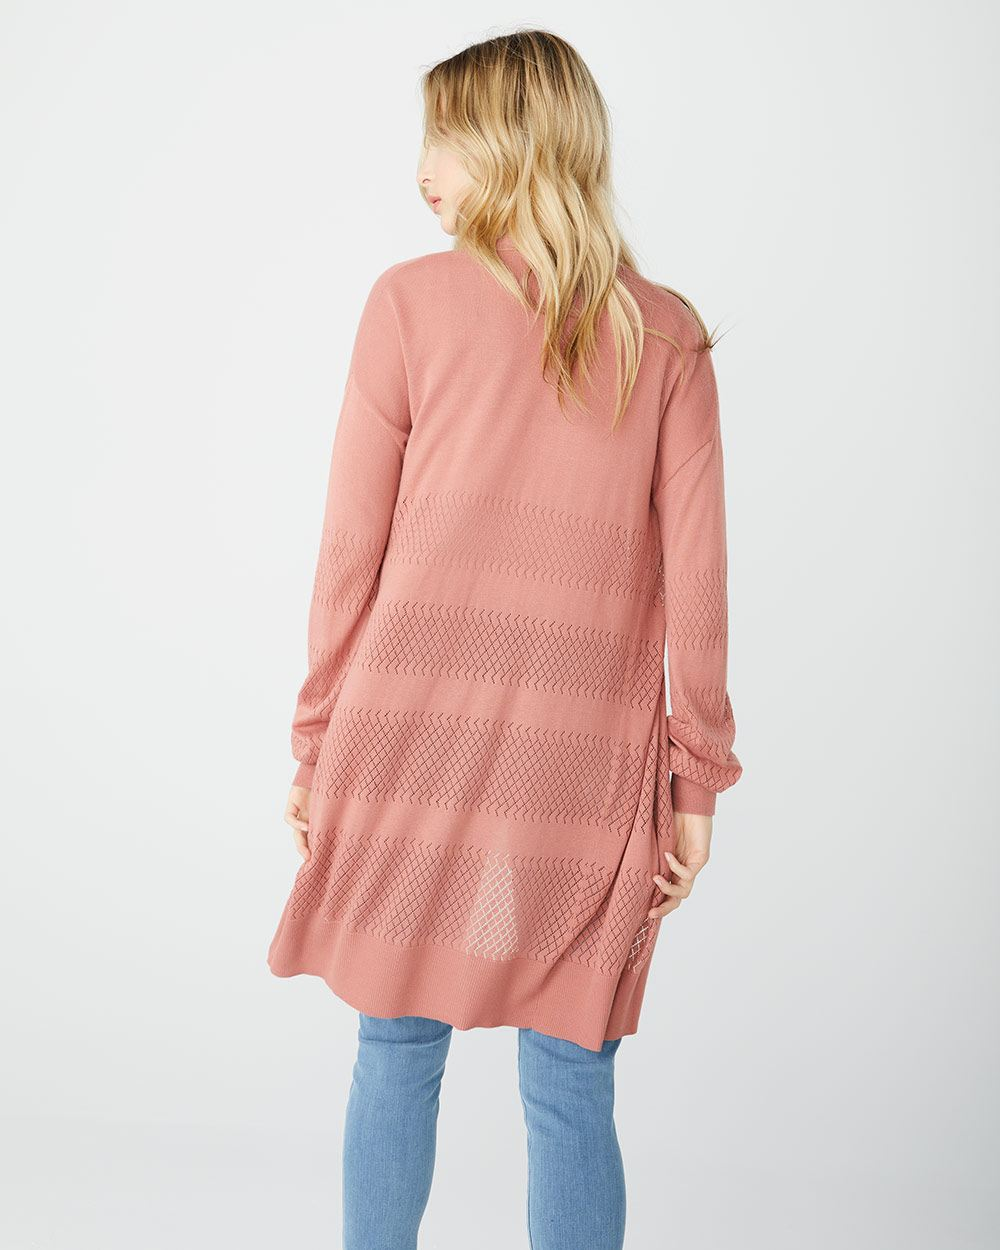 Lighweight cashmere-like duster cardigan